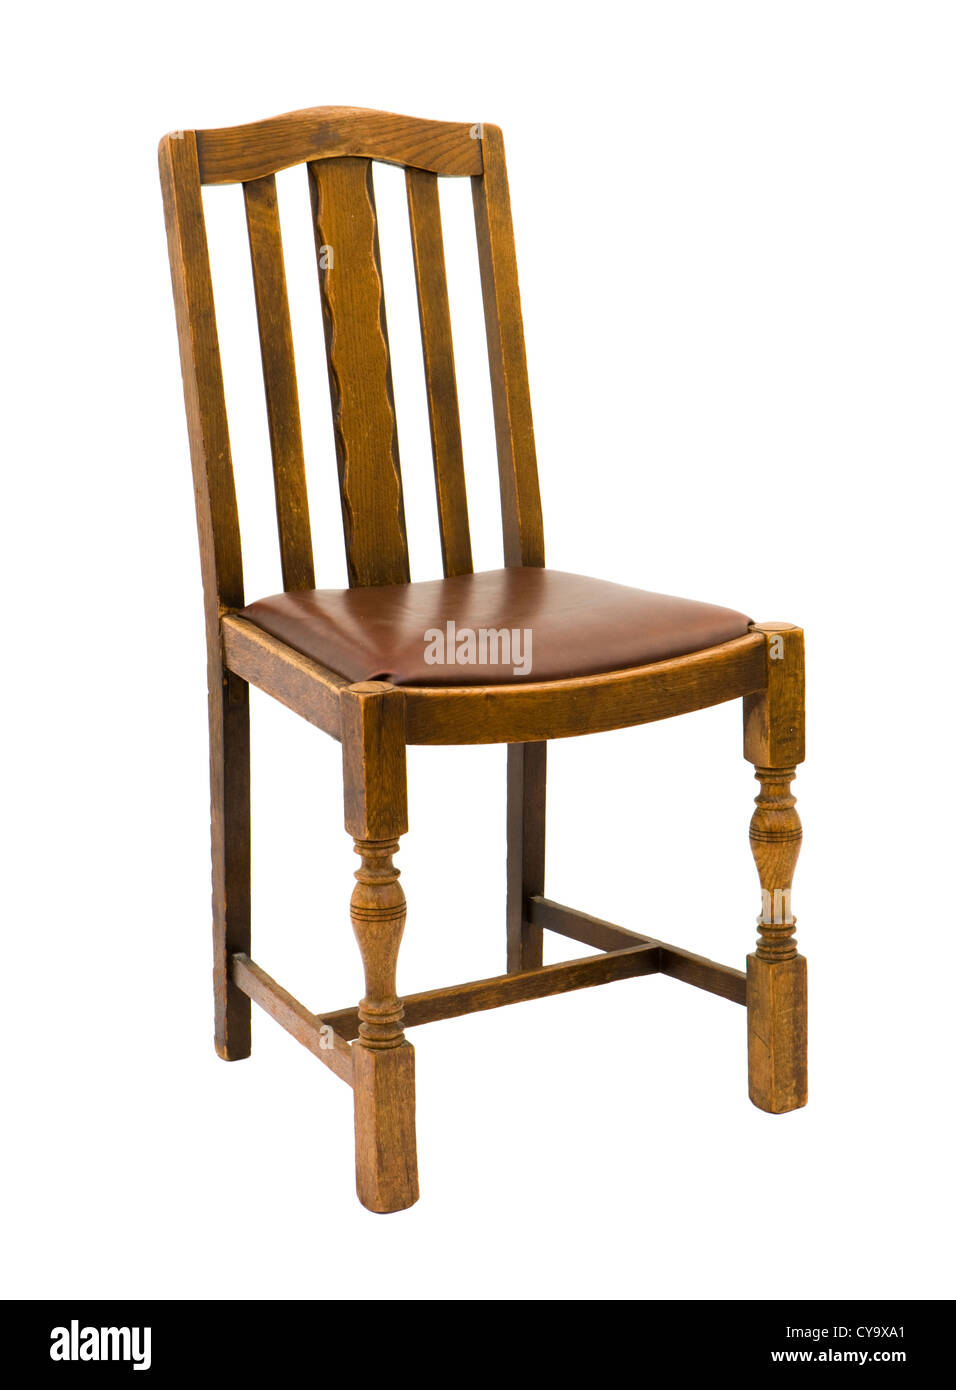 Chair. - Stock Image